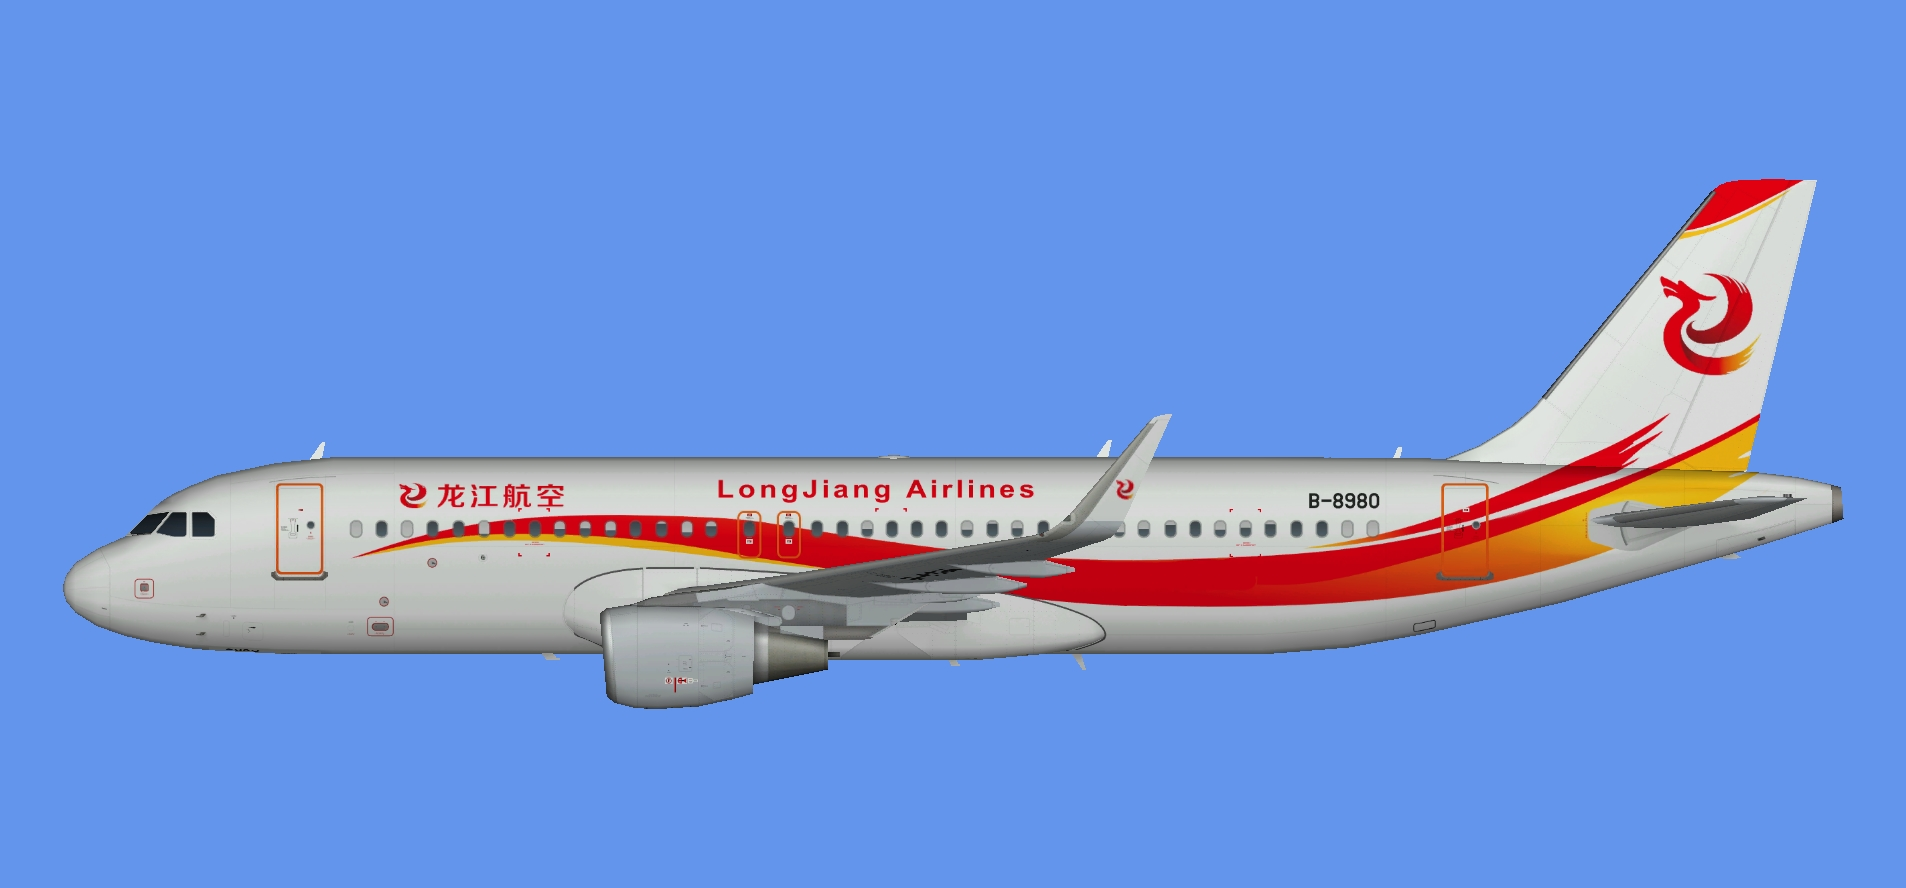 Longjiang Airlines Airbus A320